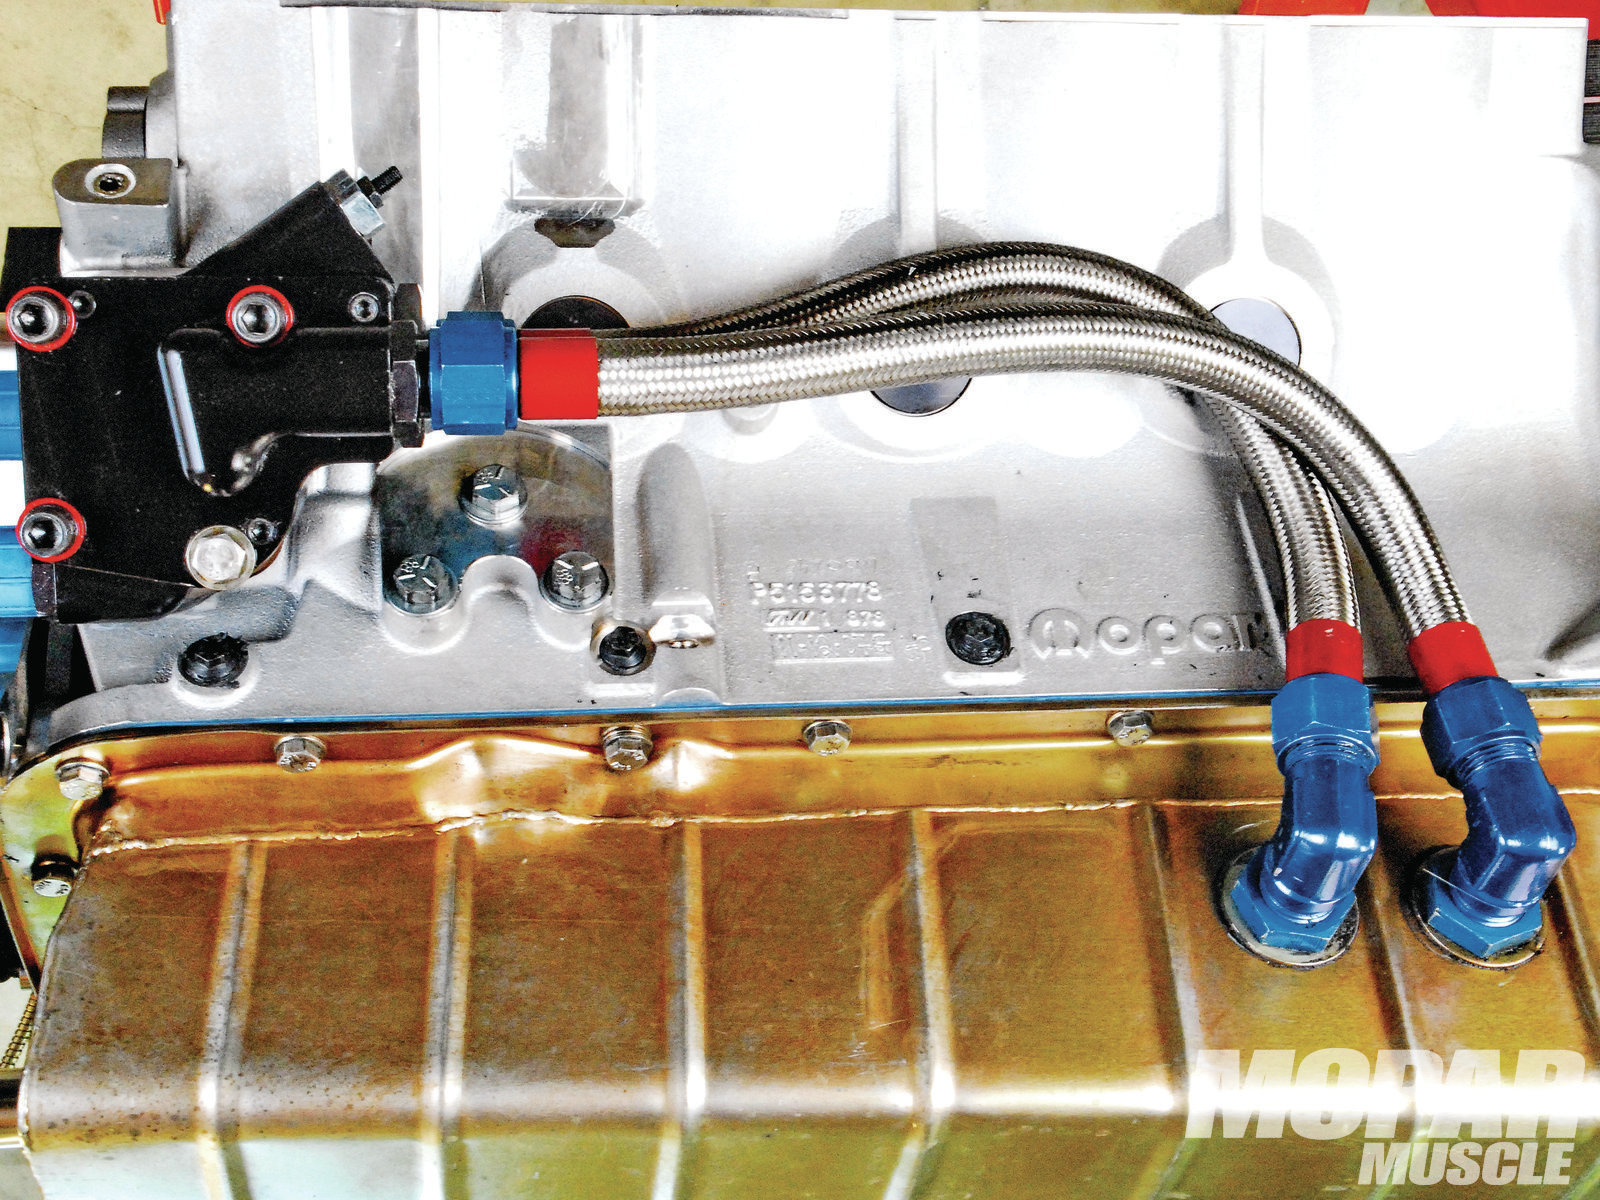 The oiling system is a 10-quart pan with a dual line and a swing-arm pickup, feeding a high-volume Titan pump, and a remote two-quart Wix oil filter. Here's a tip for you: If you pay attention to how you route the oil lines, you can consistently keep oil in the pump. That way, there are no dry starts.